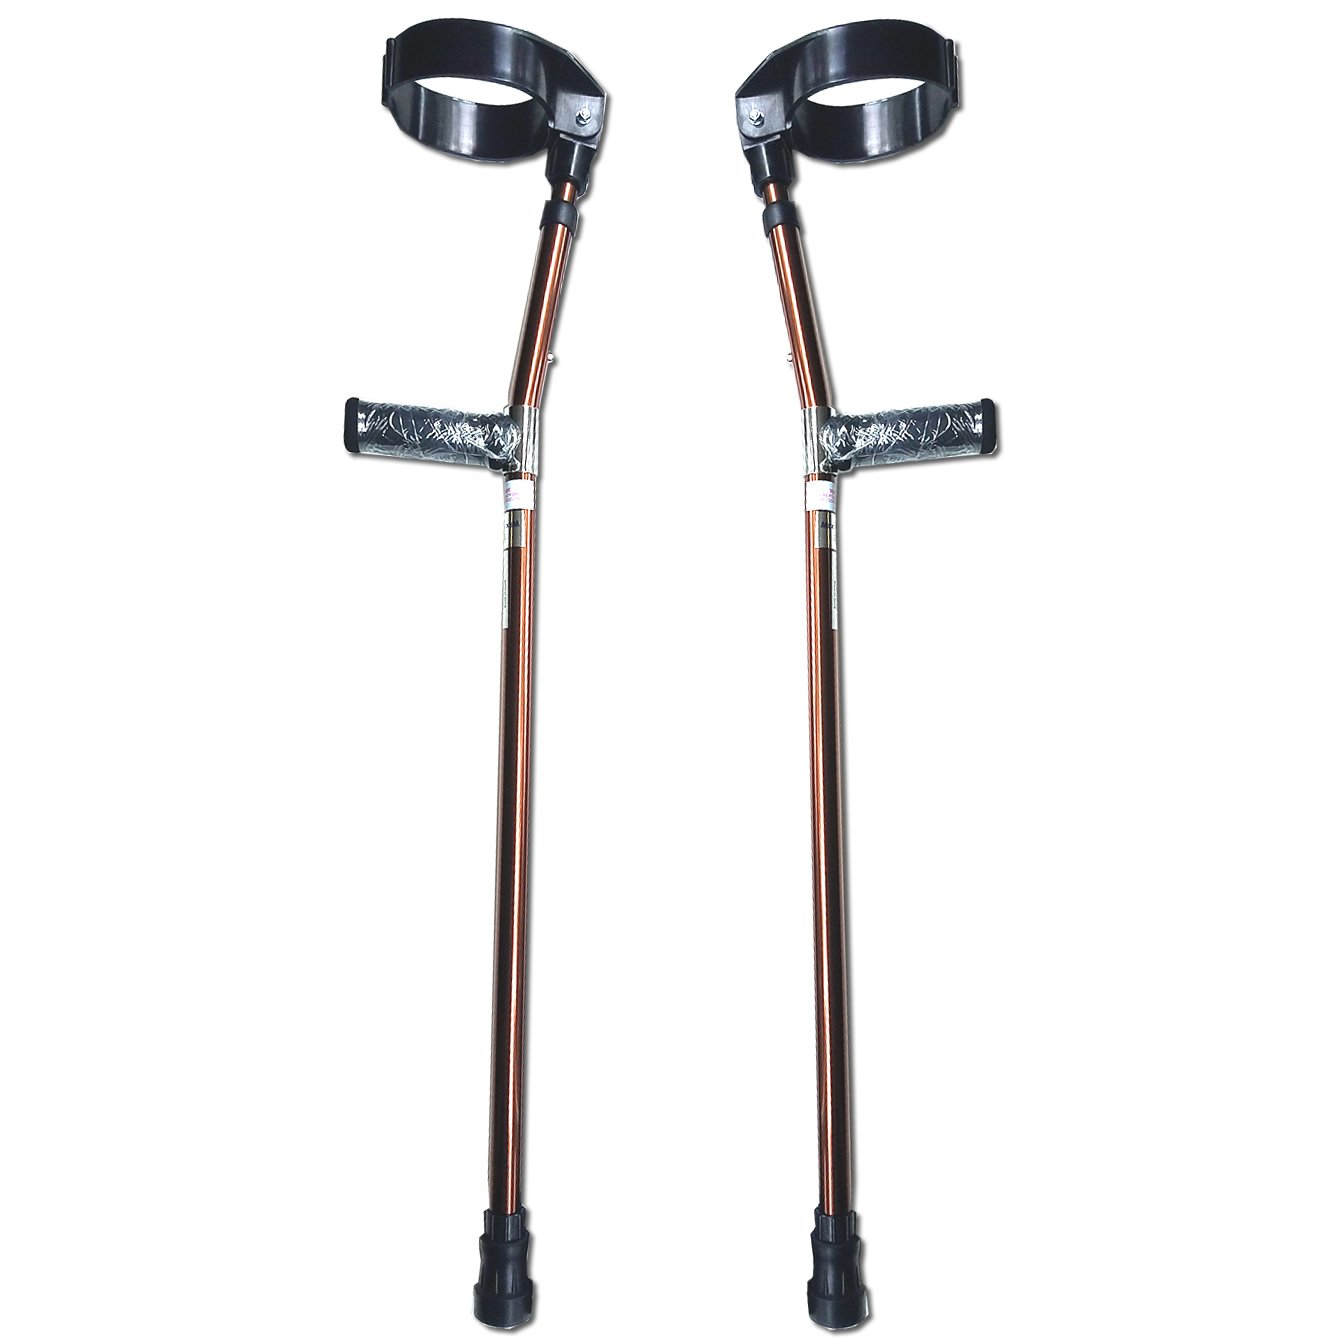 Walking Lightweight Adjustable Forearm Crutches Size M (Pair) - Bronze